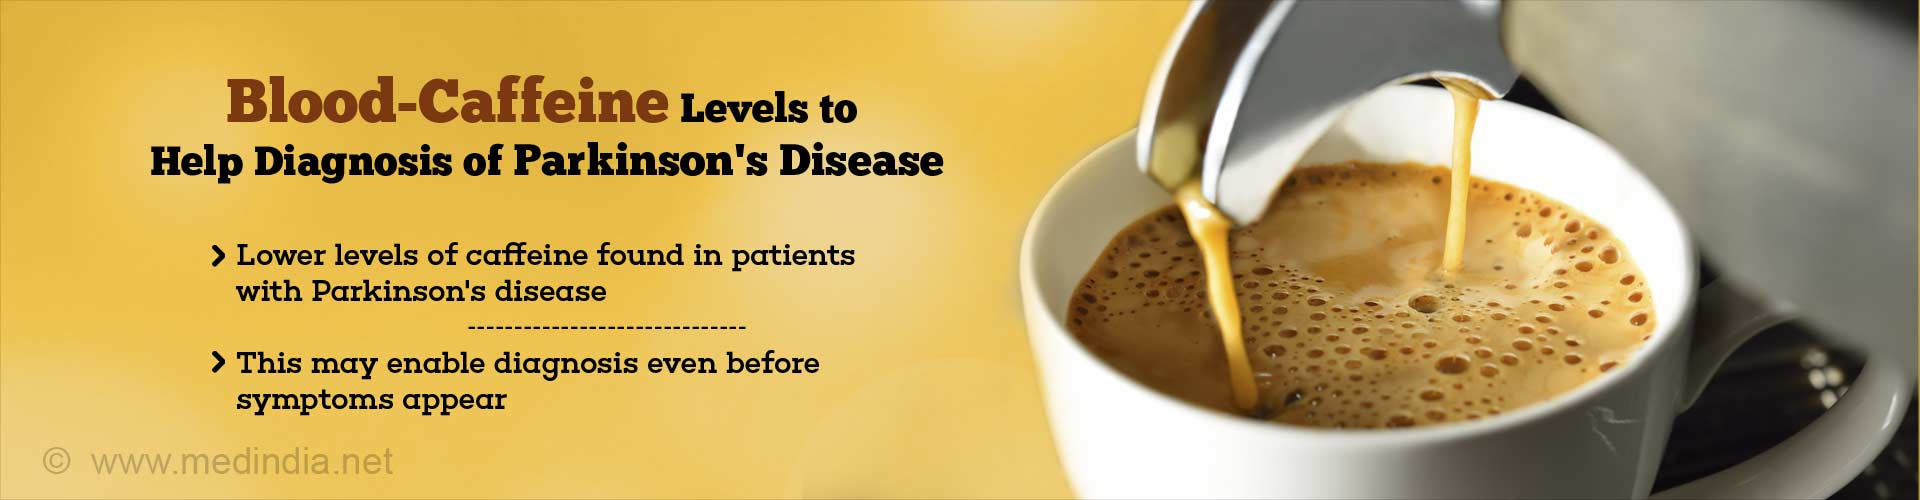 Blood-Caffeine Level to Aid Diagnosis of Parkinsons Disease